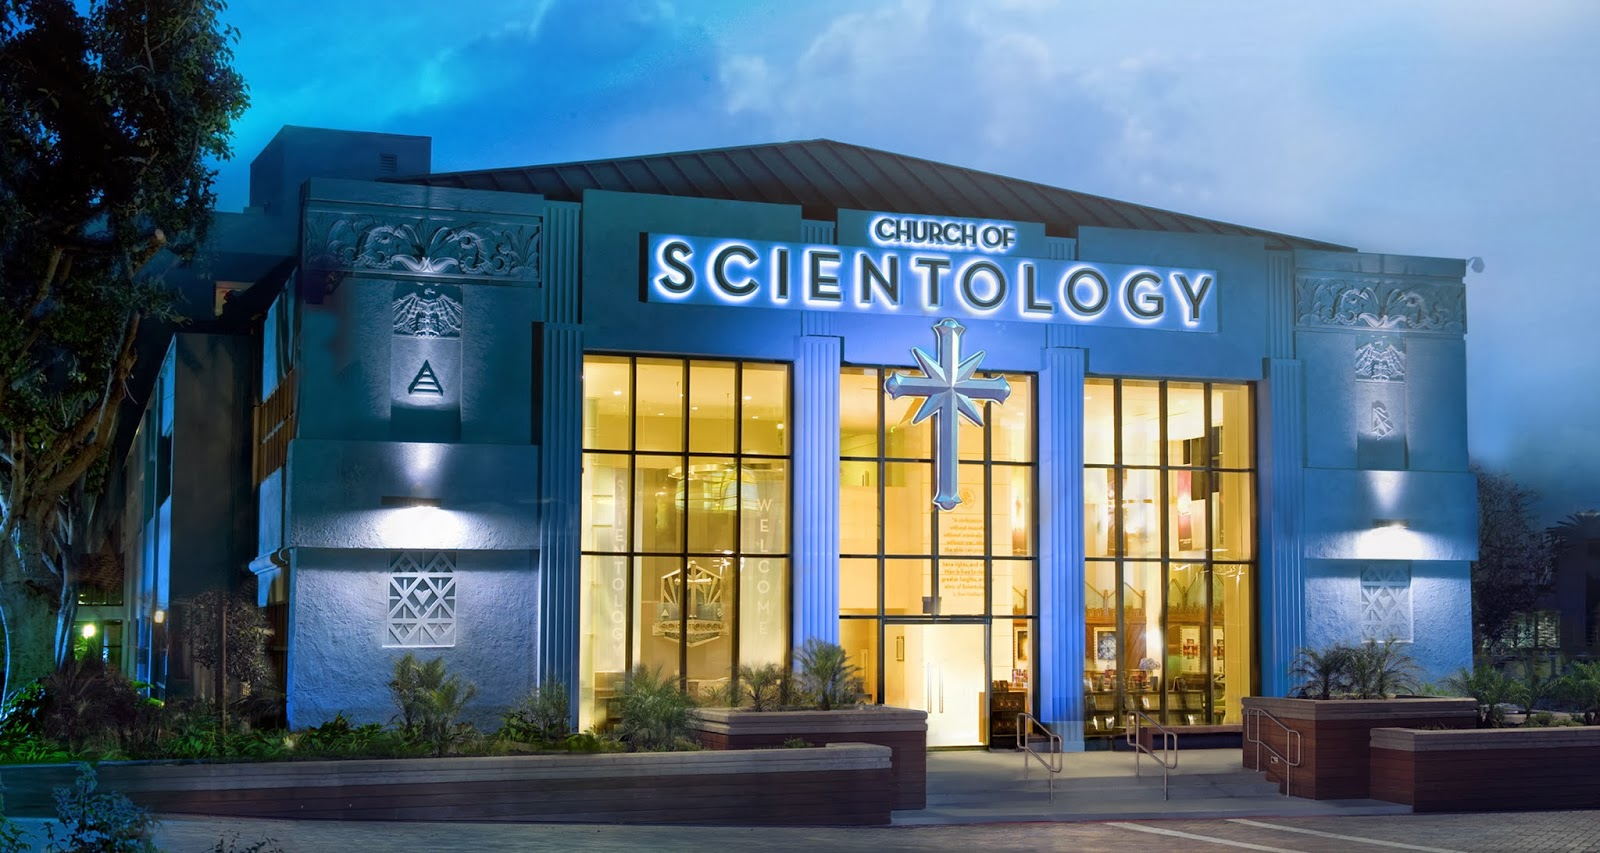 10 Things You Didn't Know About Church of Scientology